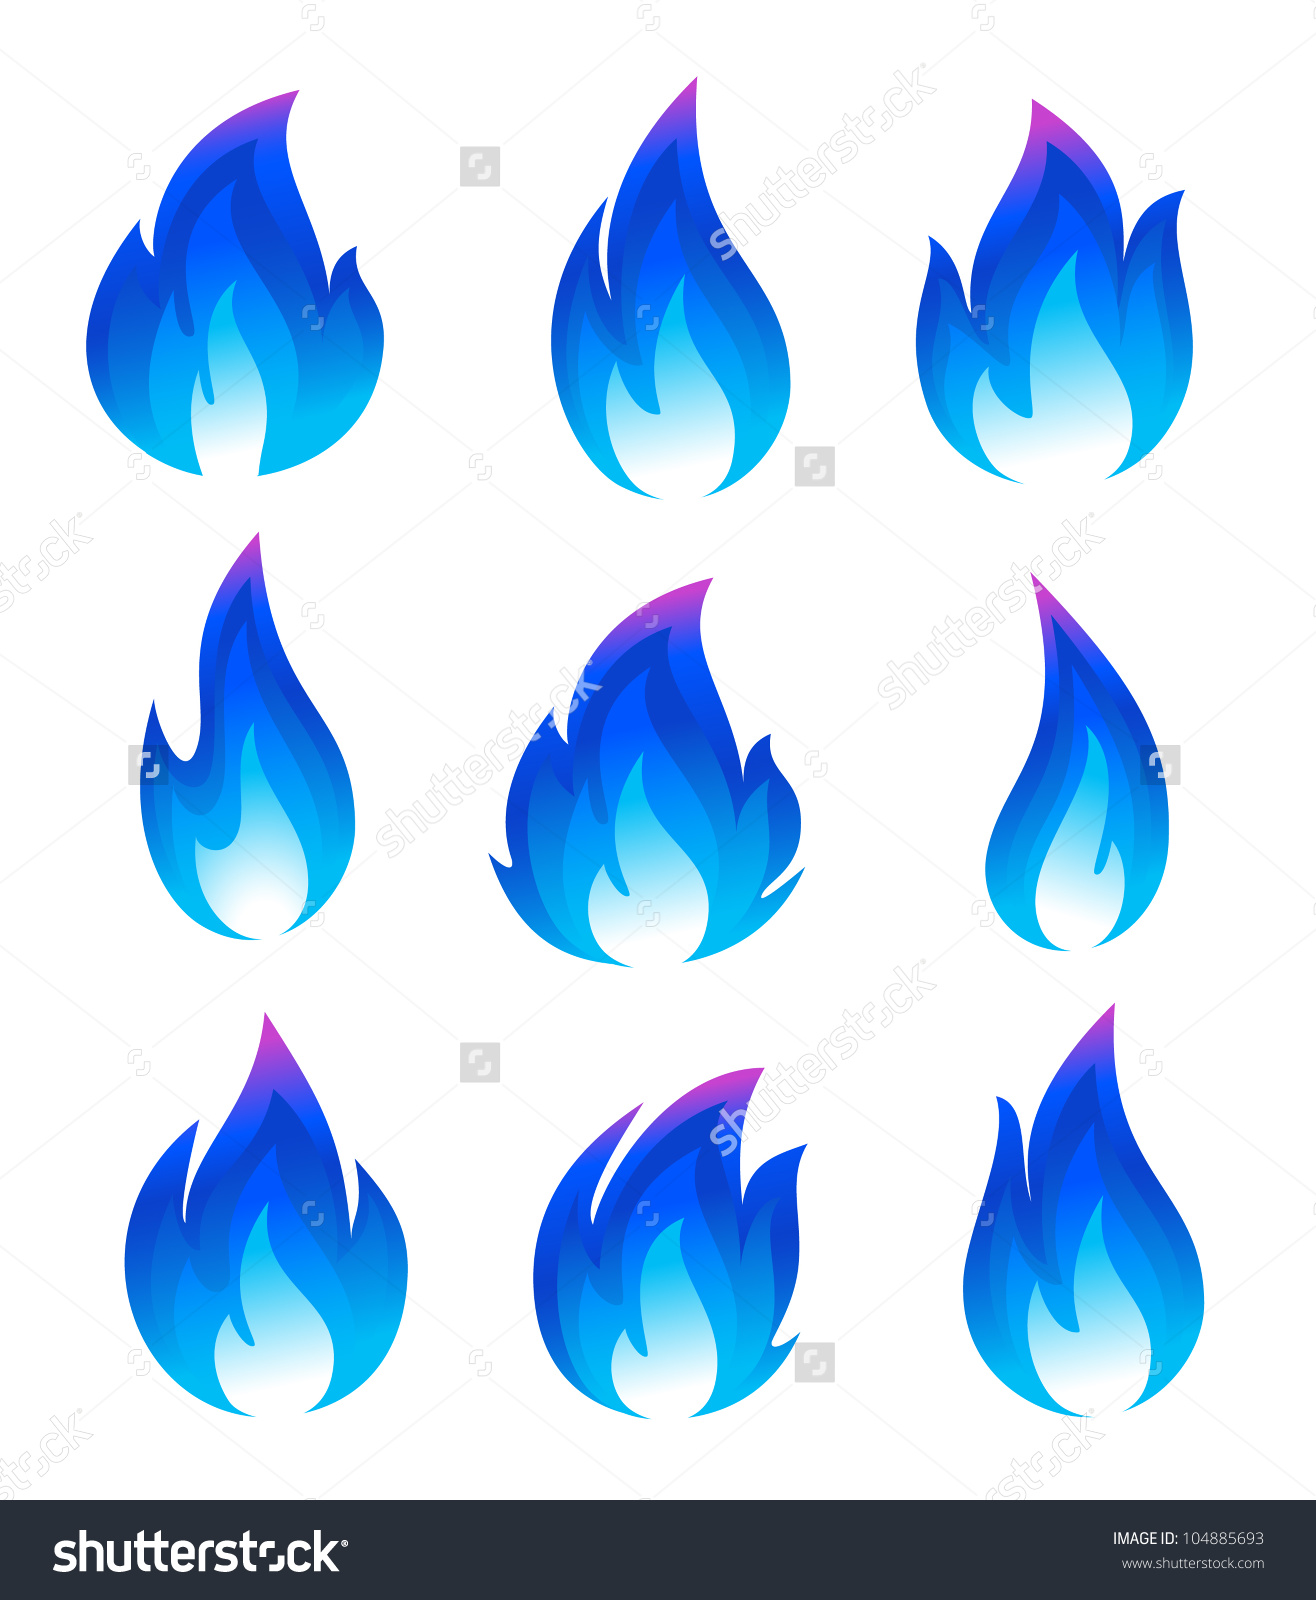 Long blue flame clipart.